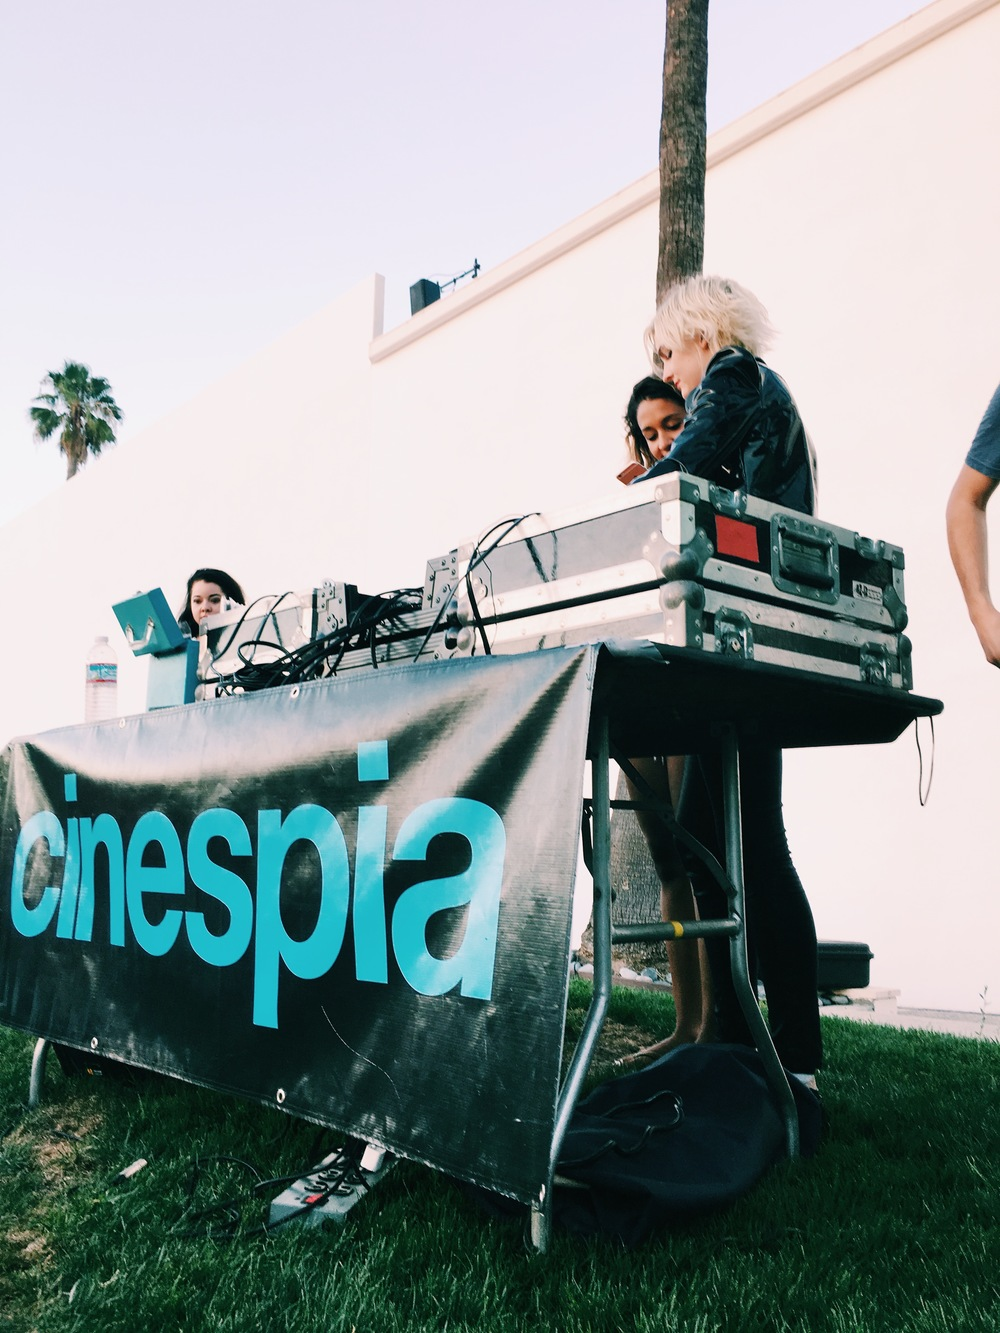 DJ set thanks to cinespia